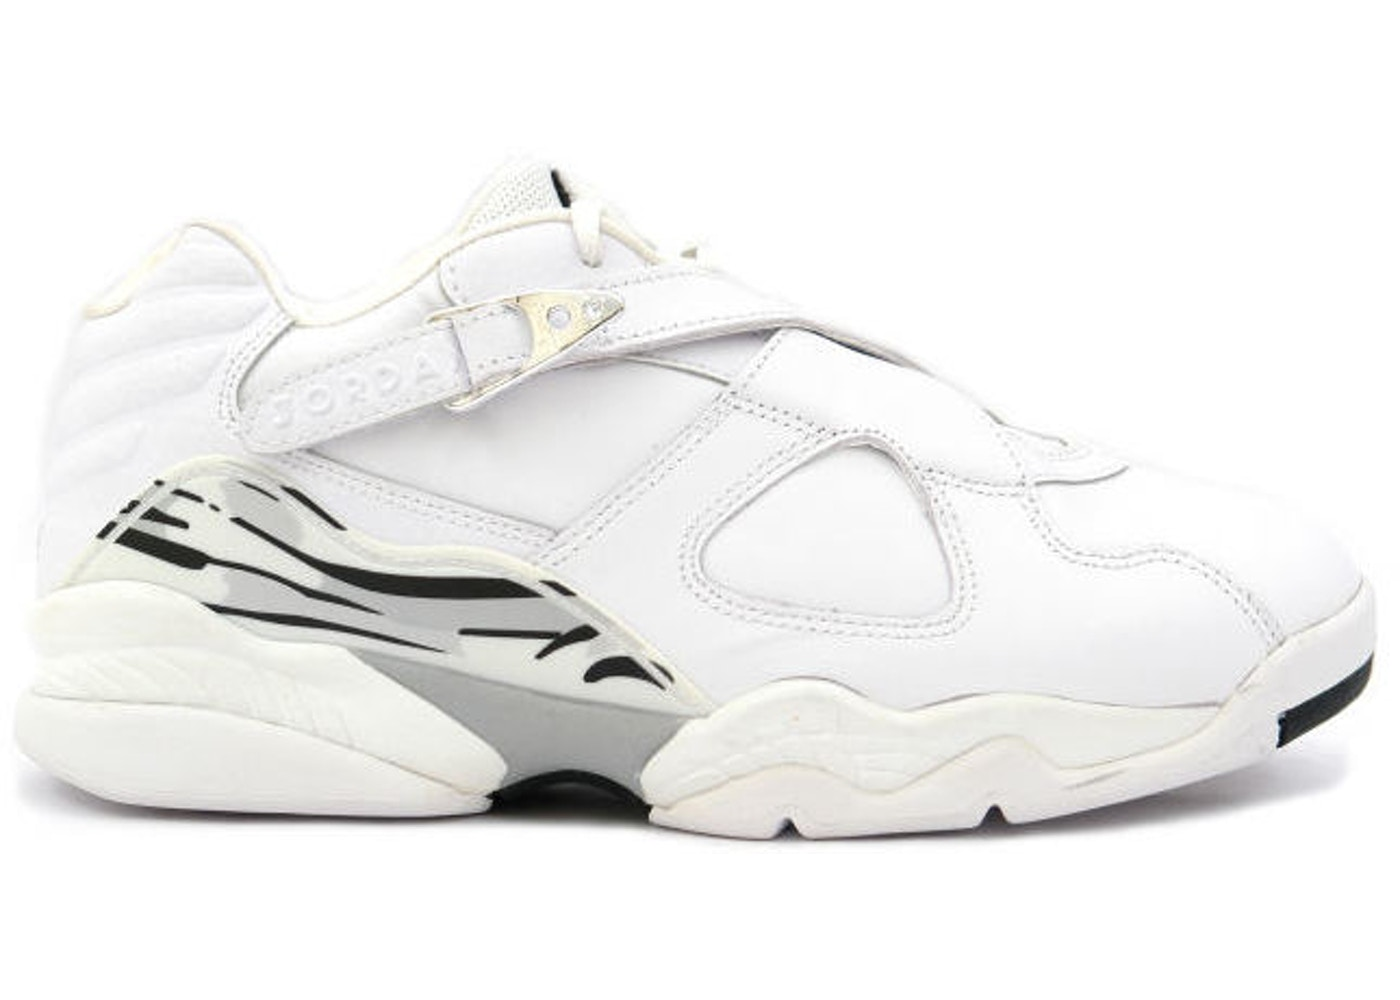 the best attitude 4b218 4a855 Jordan 8 Retro Low White Metallic Silver - 306157-101